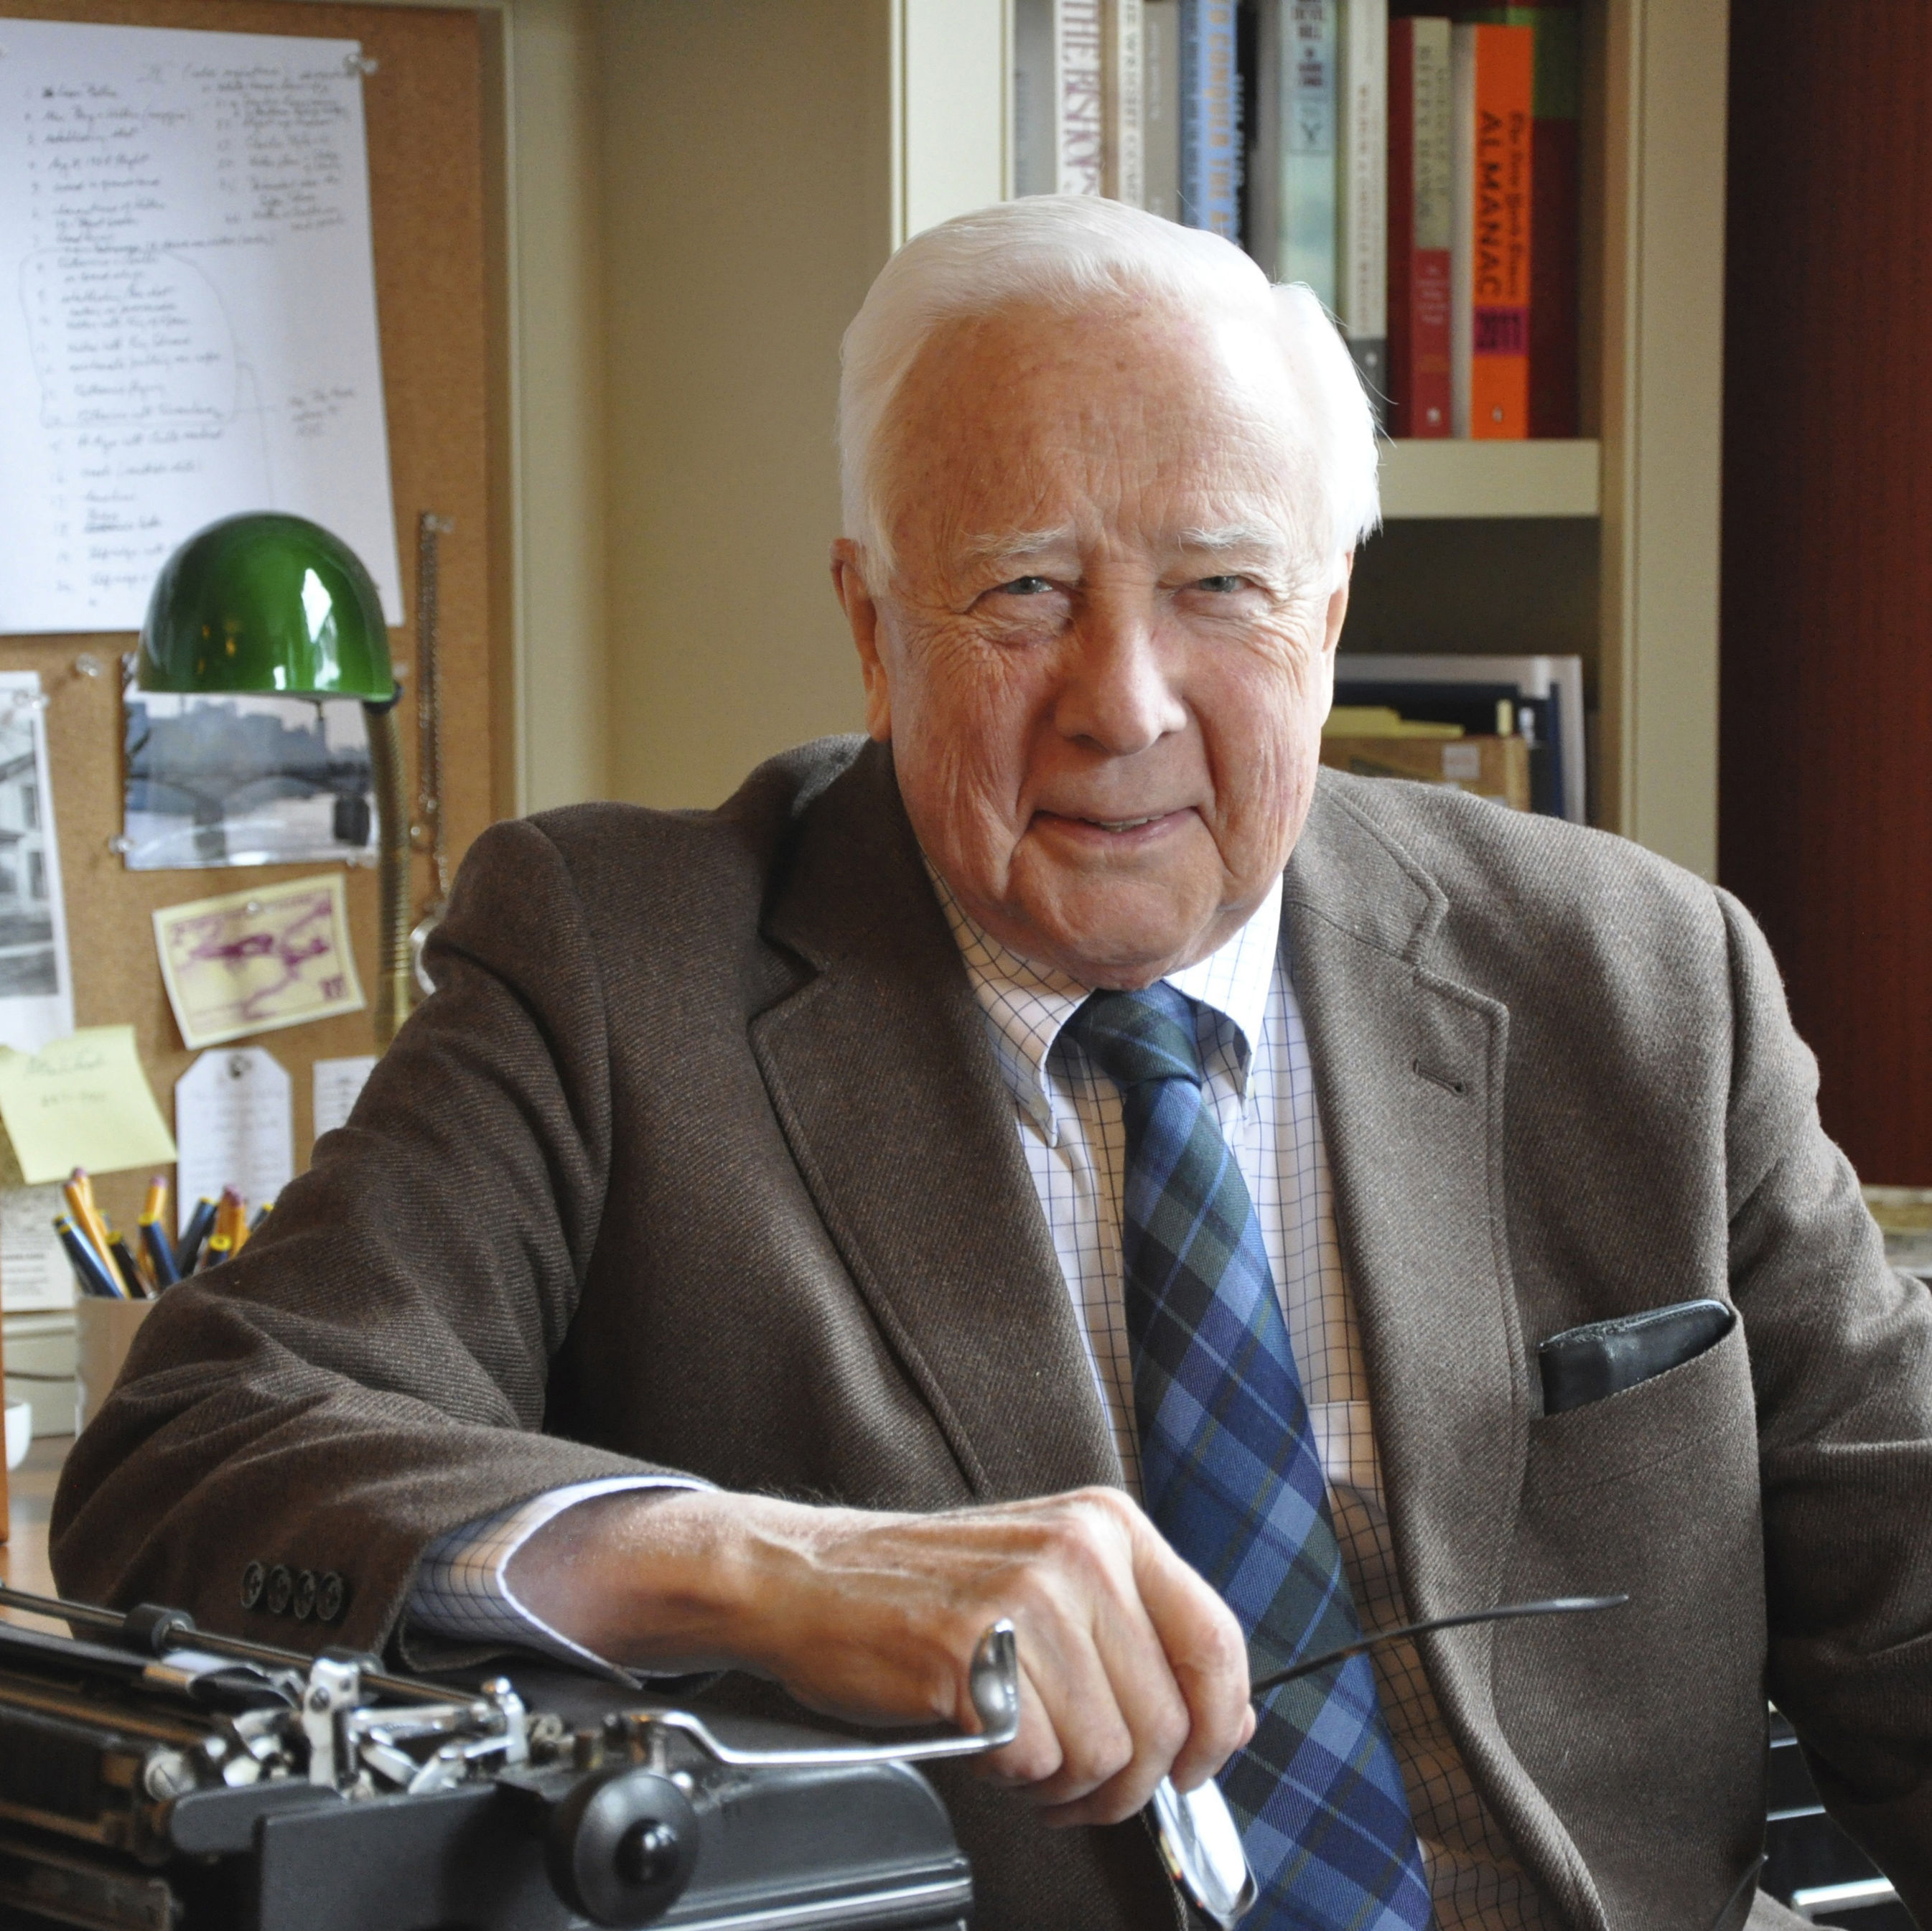 David mccullough ebu8li